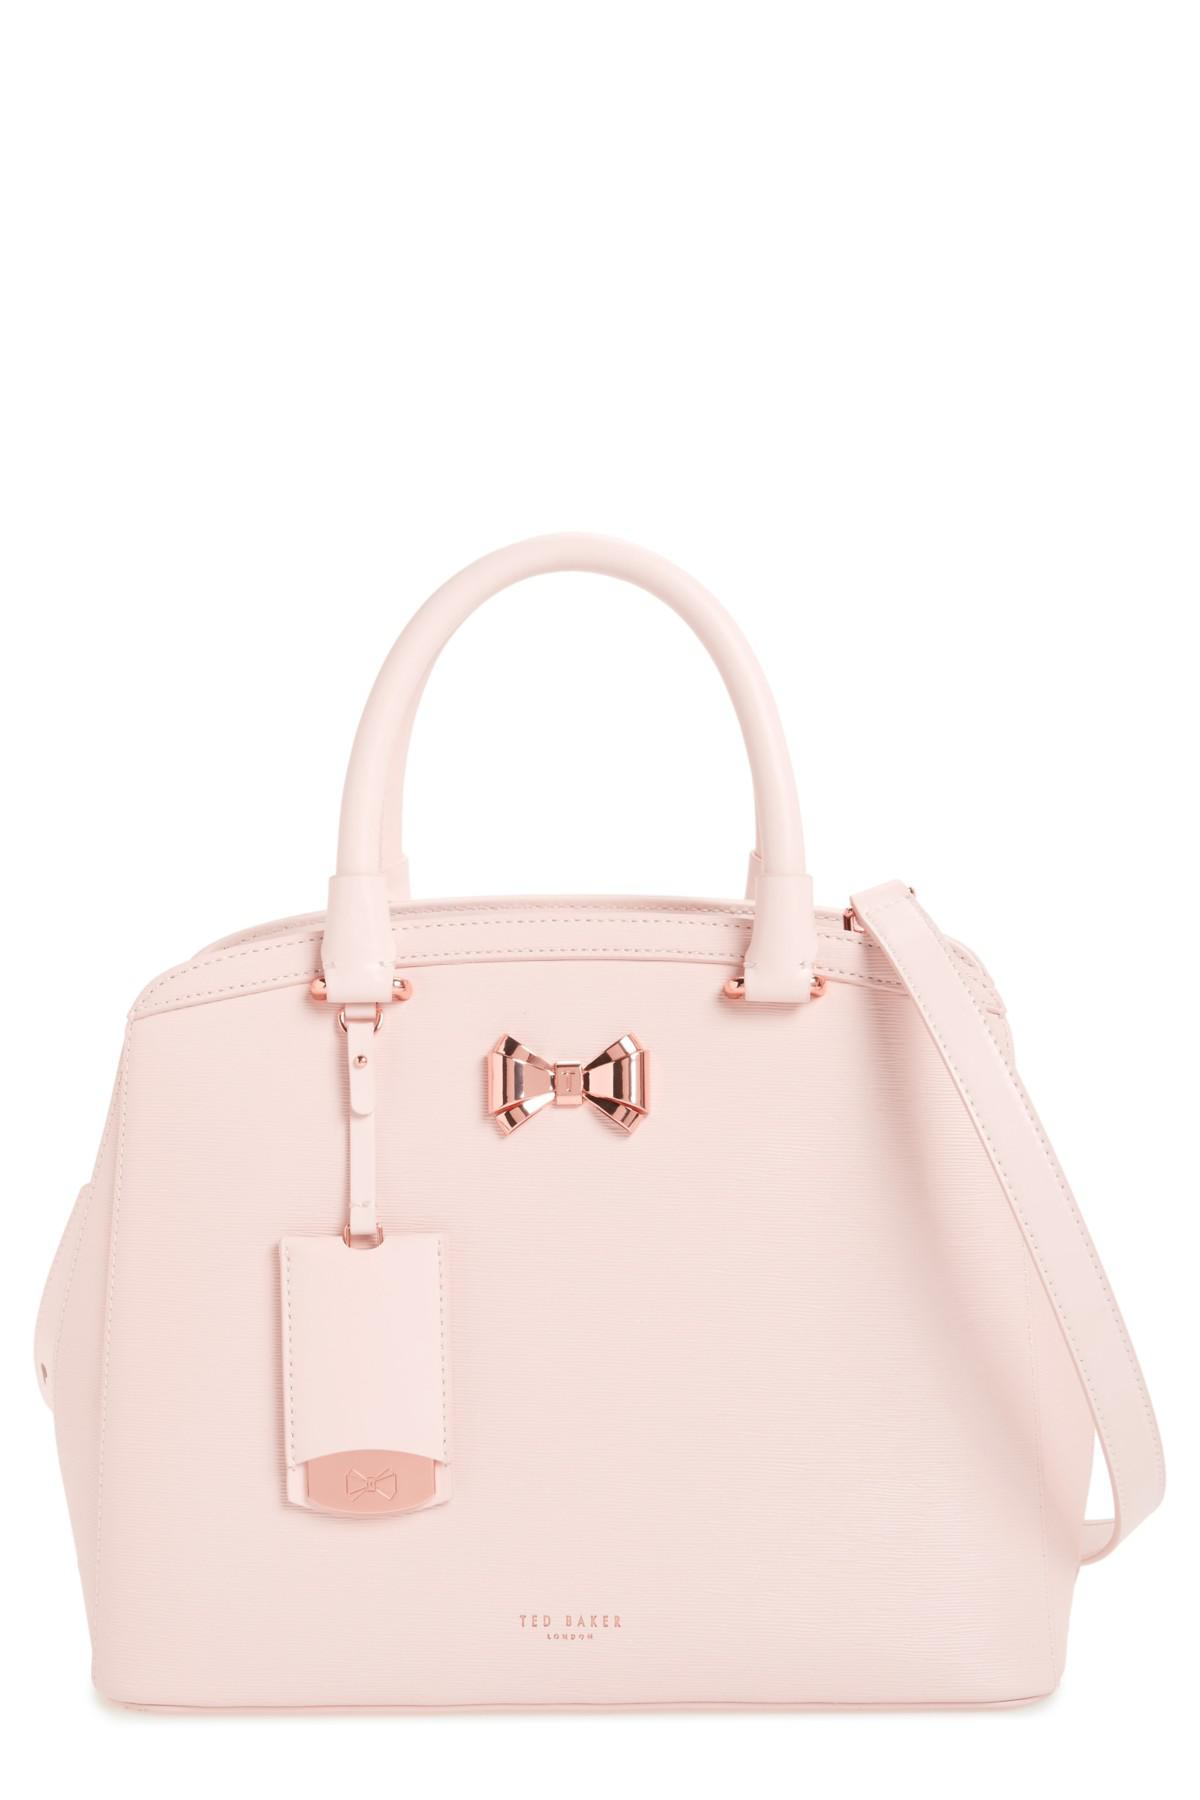 4f133c2c9884 Lyst Ted Baker Small Tealia Leather Satchel In Pink. Ted Baker London Alisa  Crosshatch Crossbody Bag At Nordstrom Rack Free Shipping On Orders Over 100